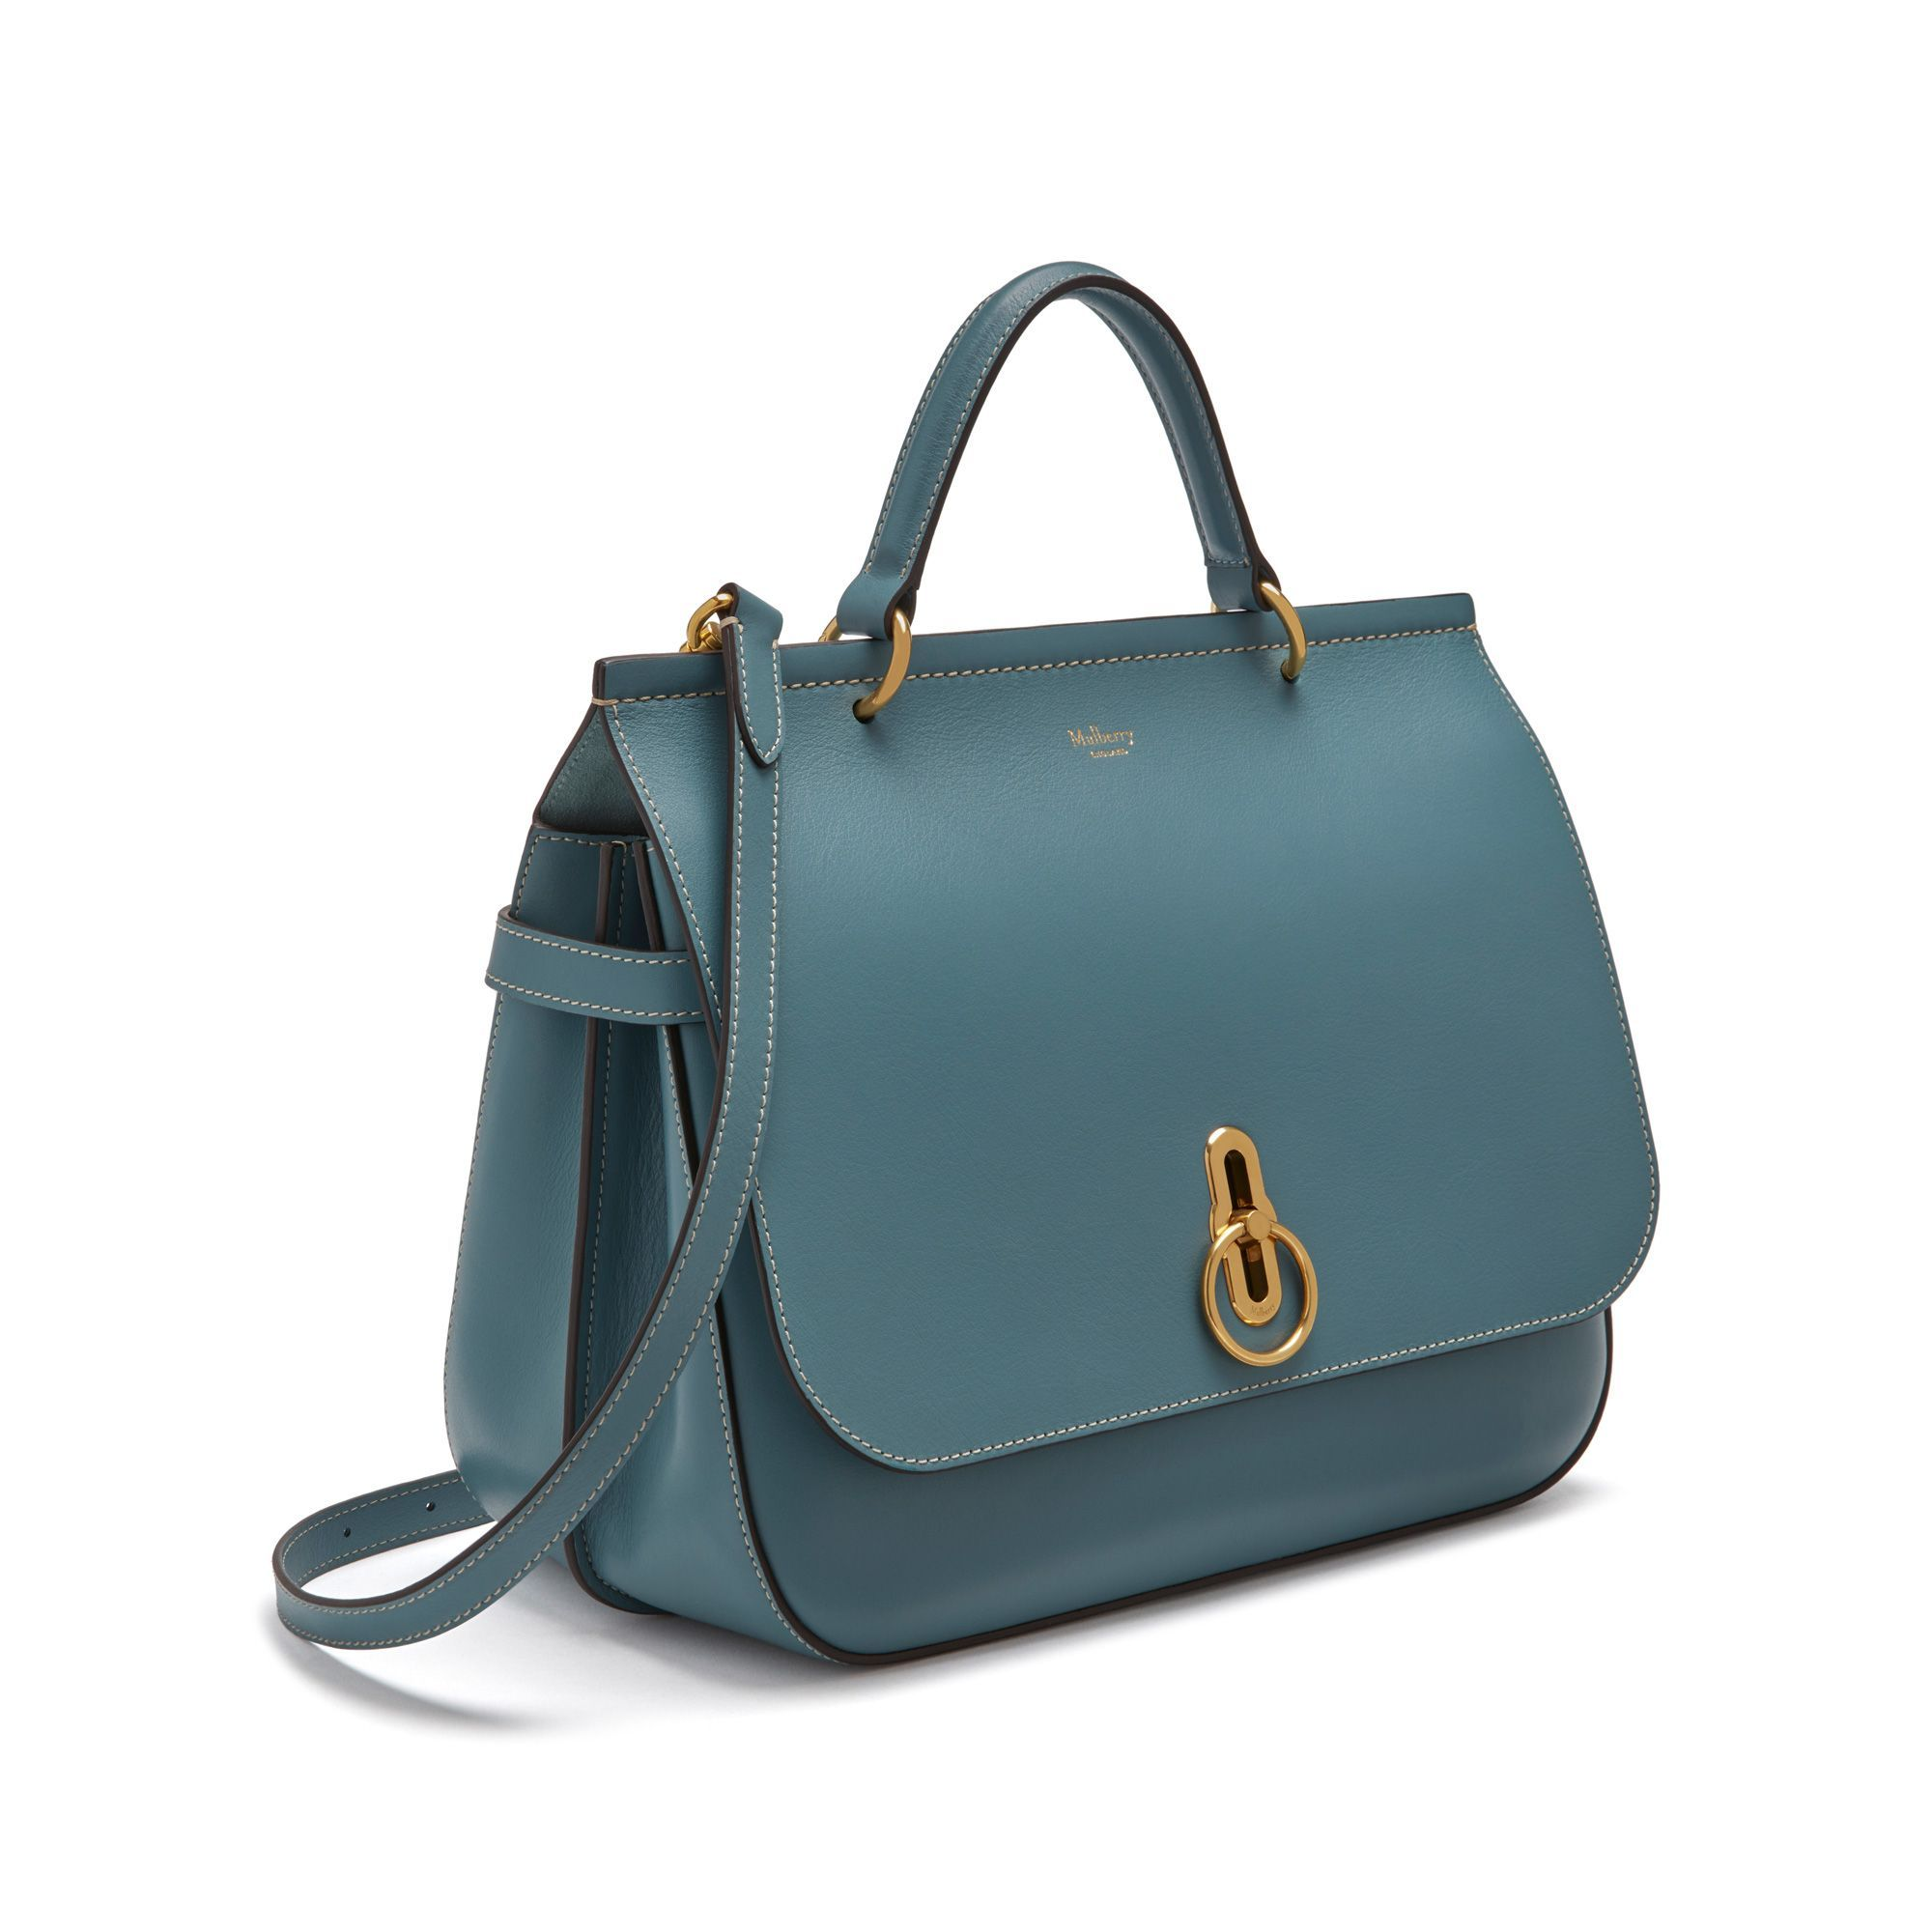 a2bb3ff5e36ef Shop the Amberley in Dark Frozen Silky Calf Leather at Mulberry.com. The  Amberley